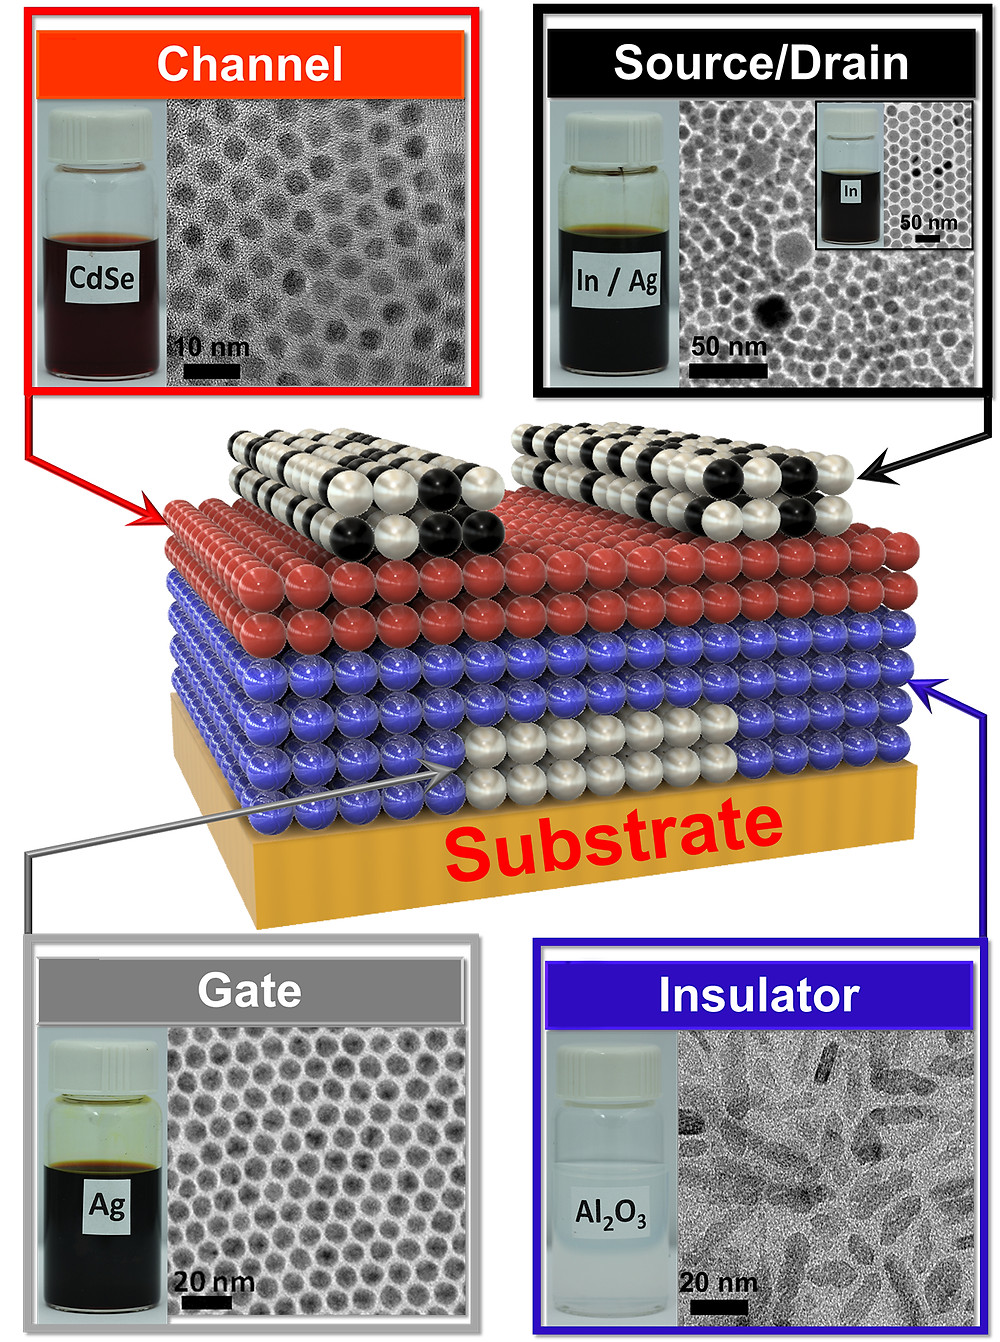 Kagan's group developed four nanocrystal inks that comprise the transistor, then deposited them on a flexible backing.